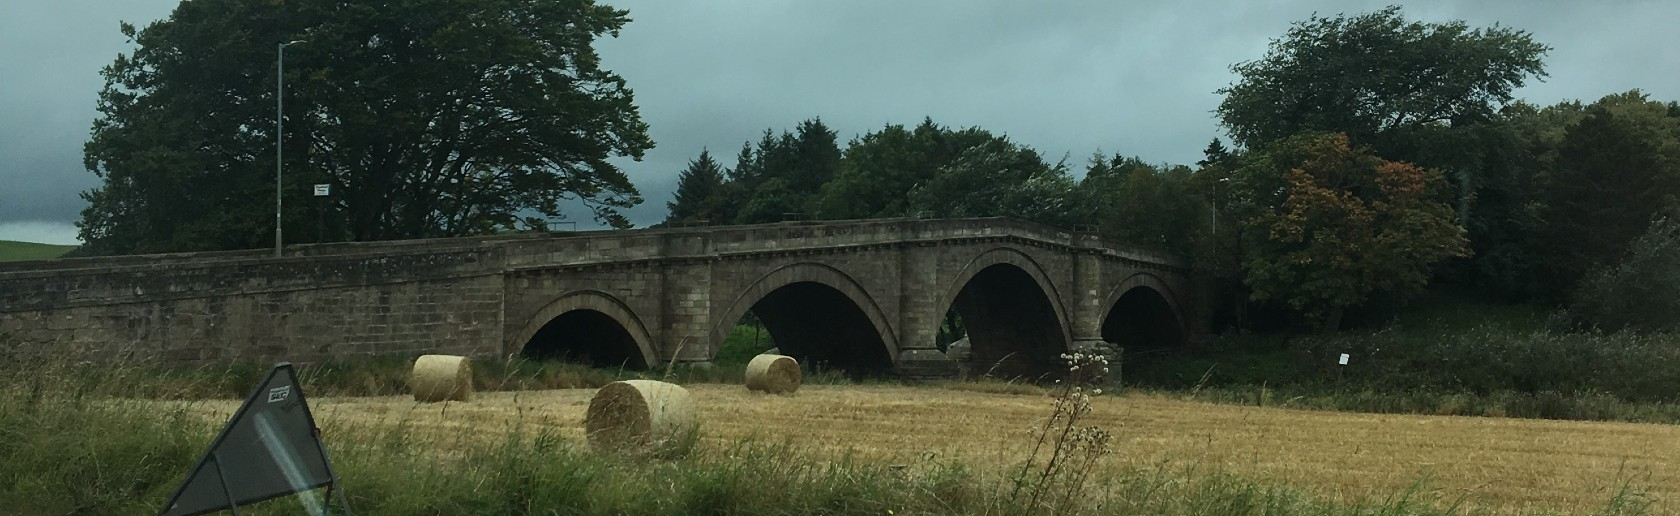 Landscape view of hay bales in a field with an old stone bridge and trees in the distance